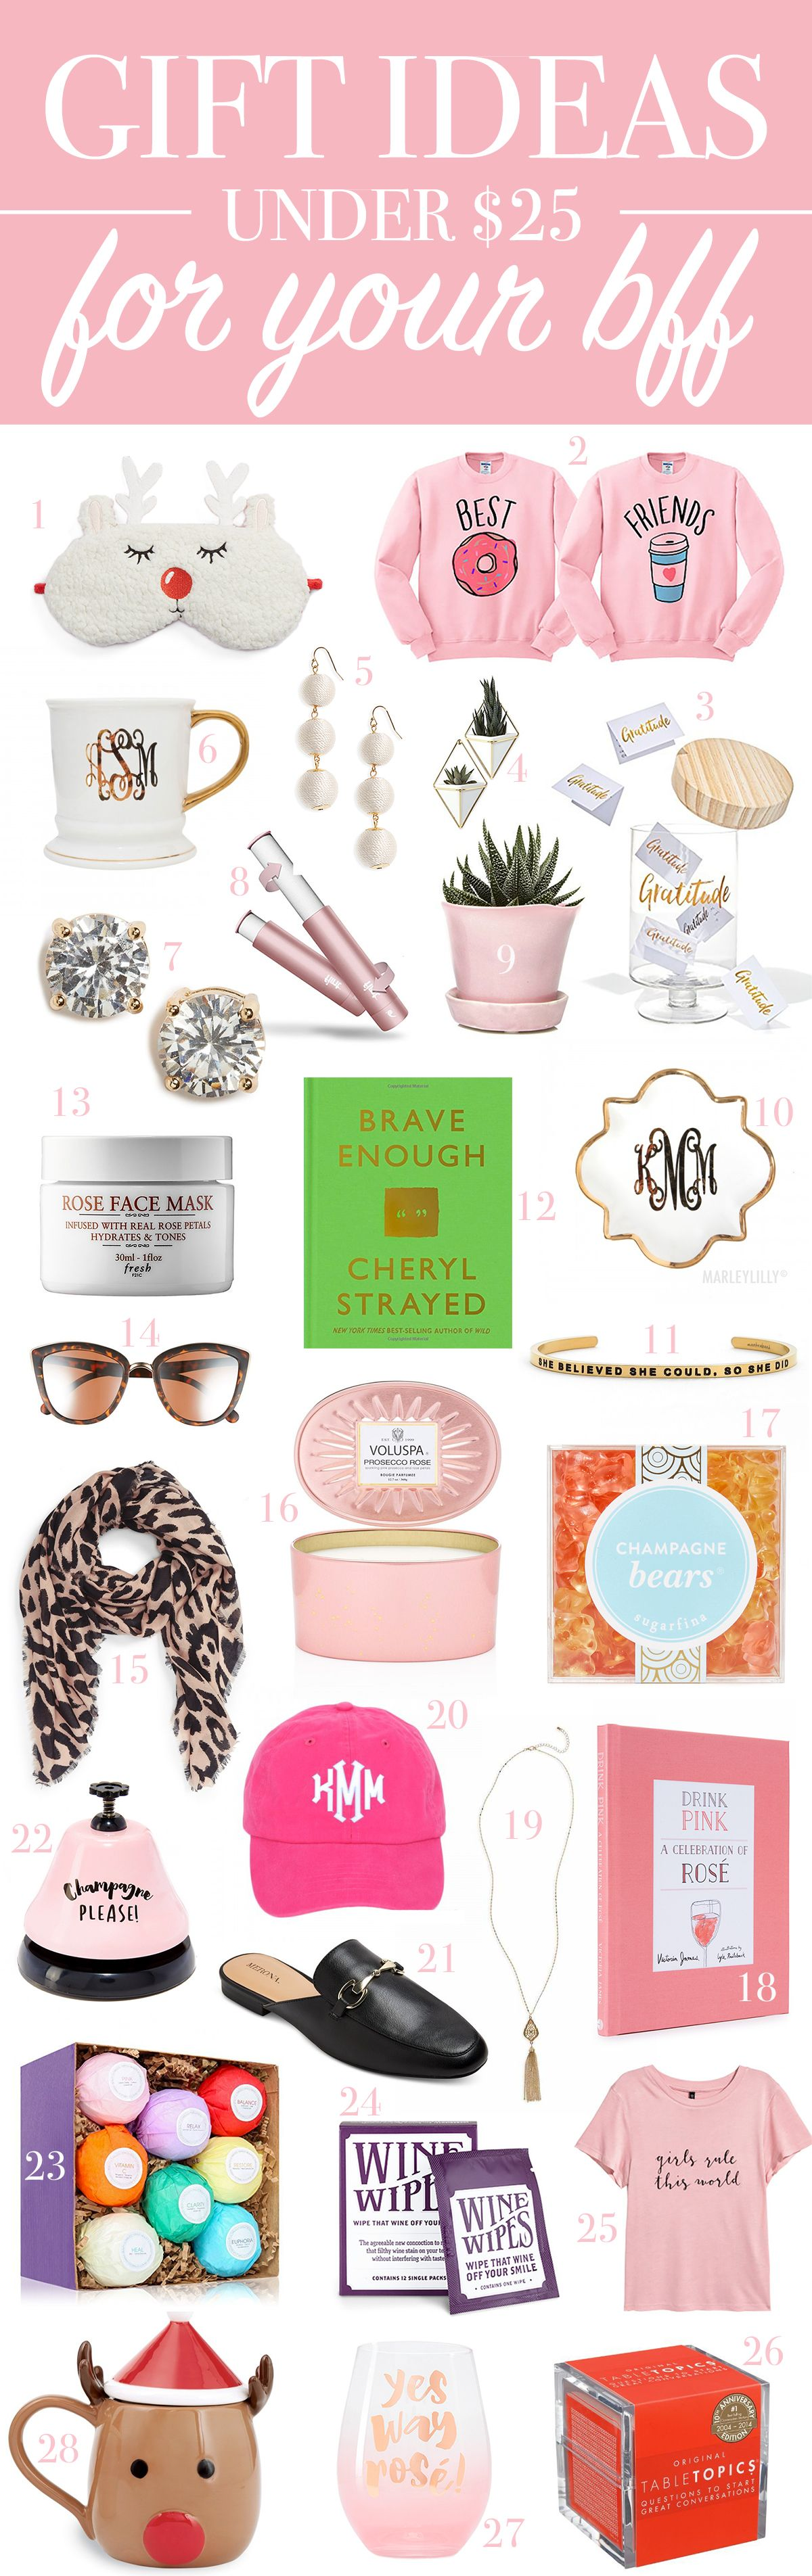 Round Up Of The Best Gifts Under 25 For Your Bff Secret Santa Ideas Women By Southern